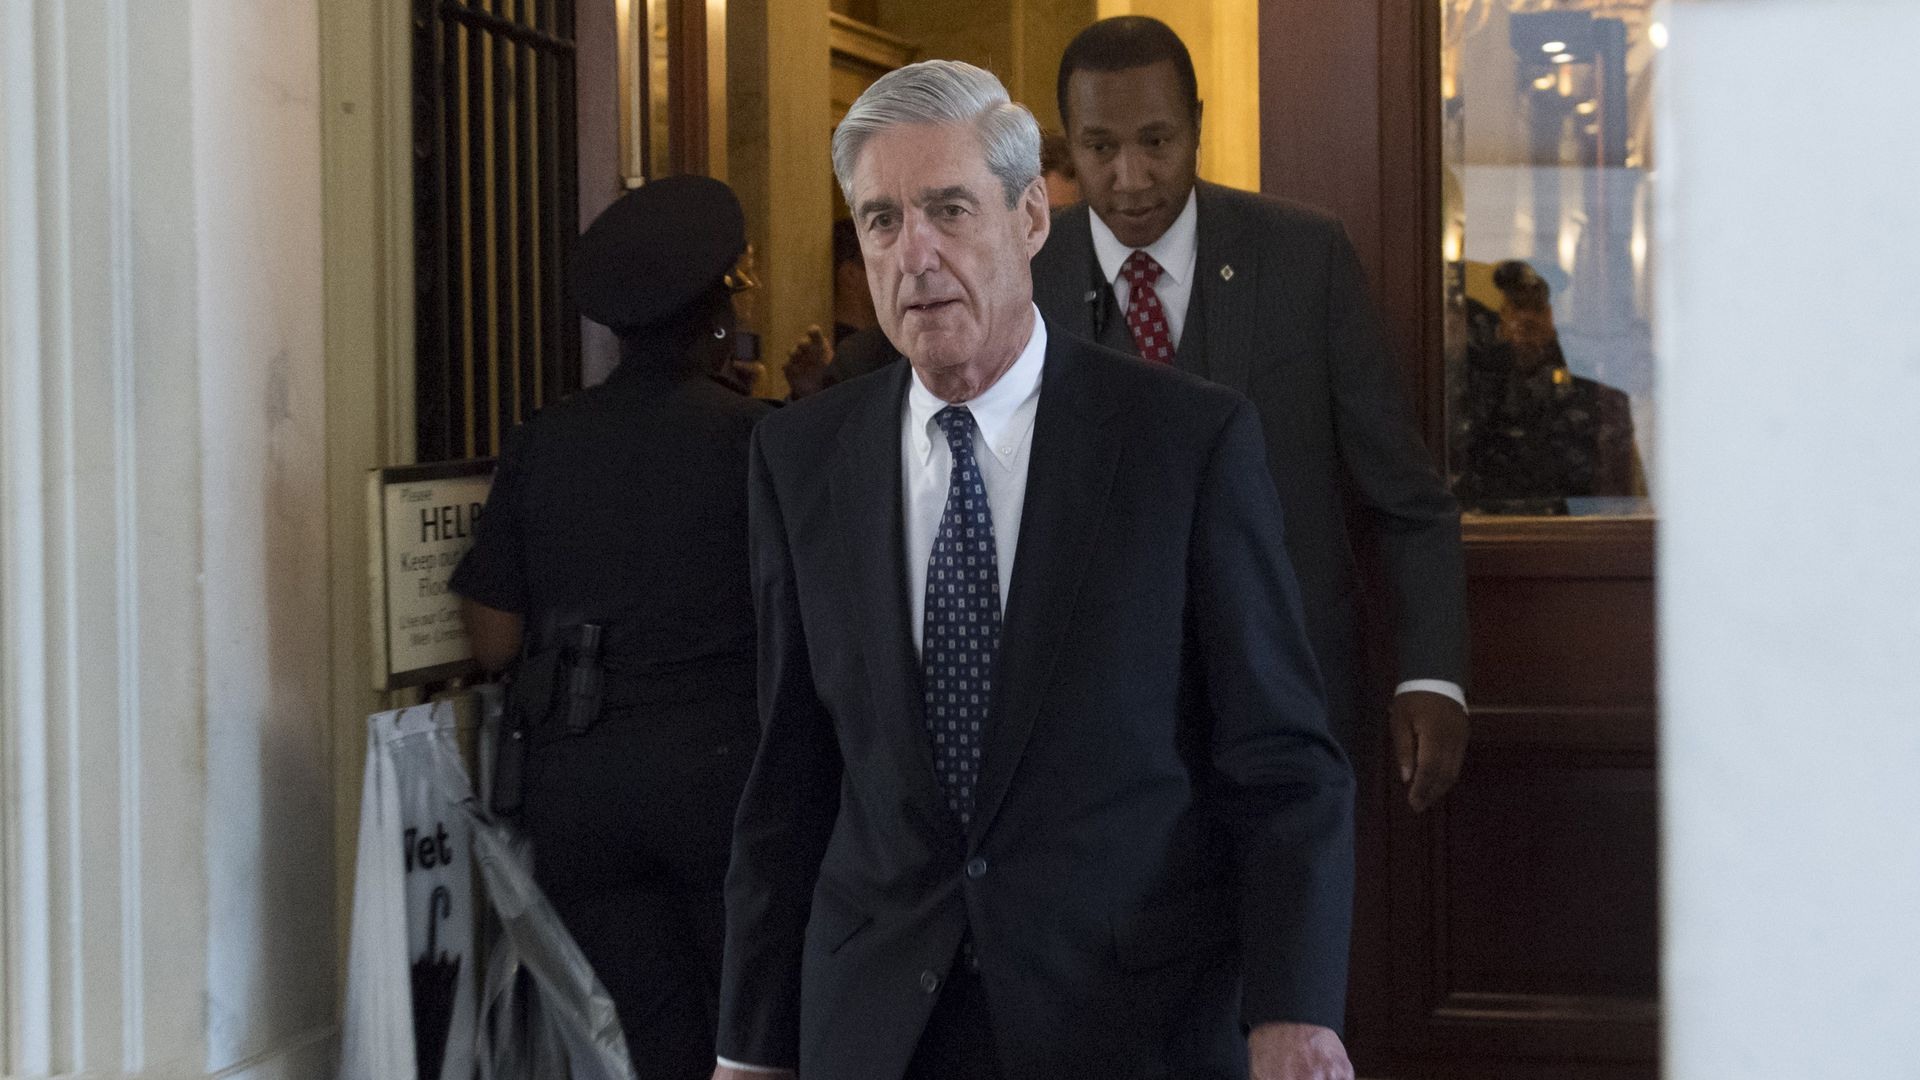 Robert Mueller walks down the stairs of the Capitol